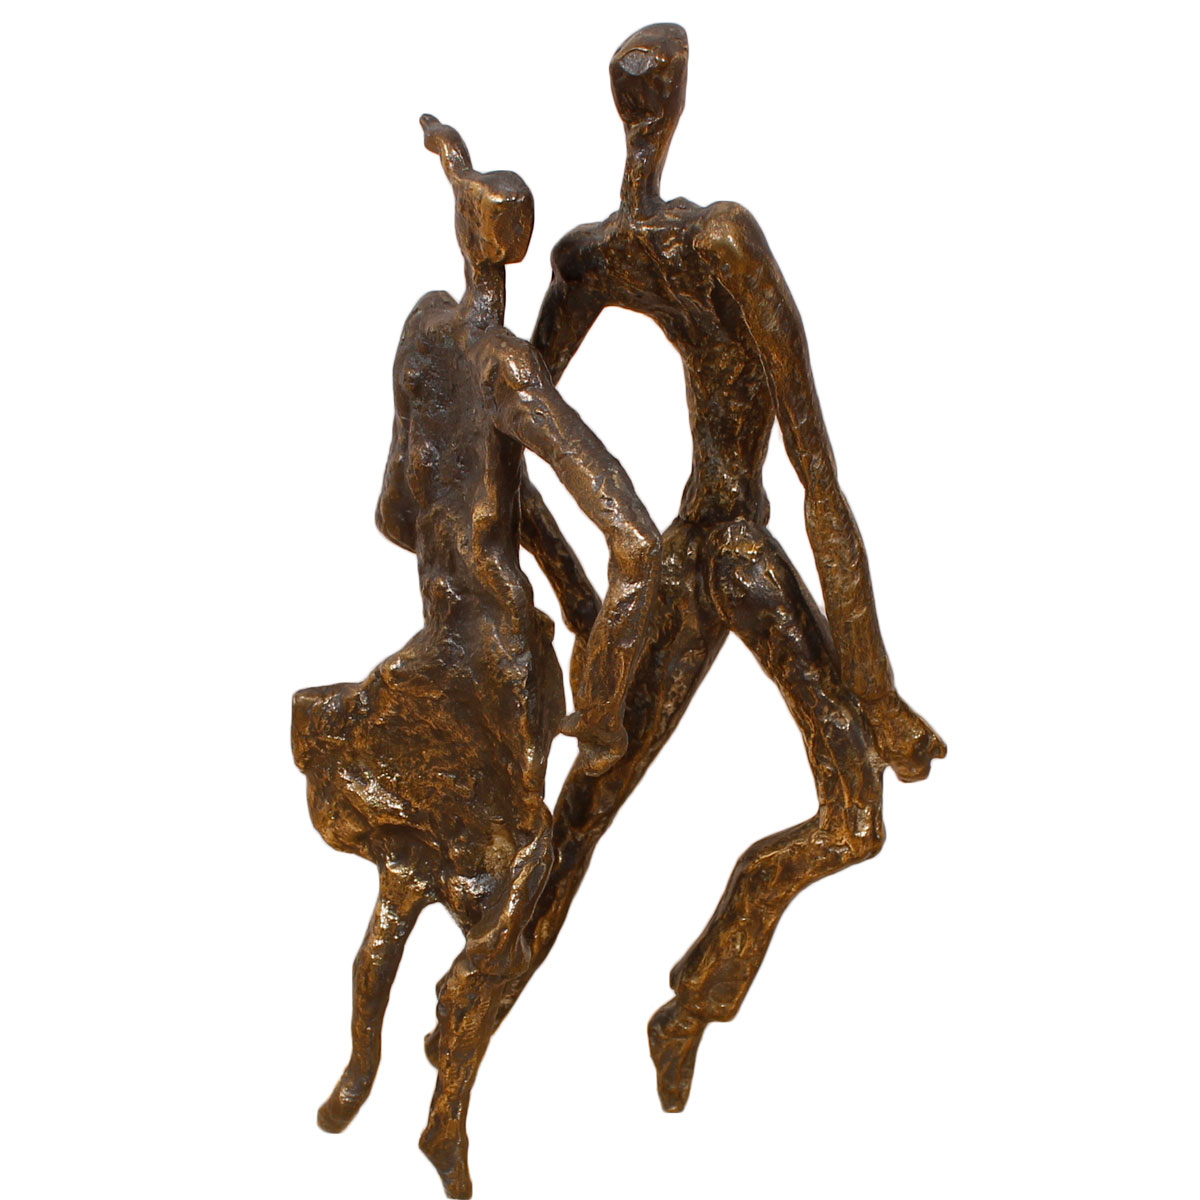 Bronze Dancing Figures – Vintage Signed Sculpture